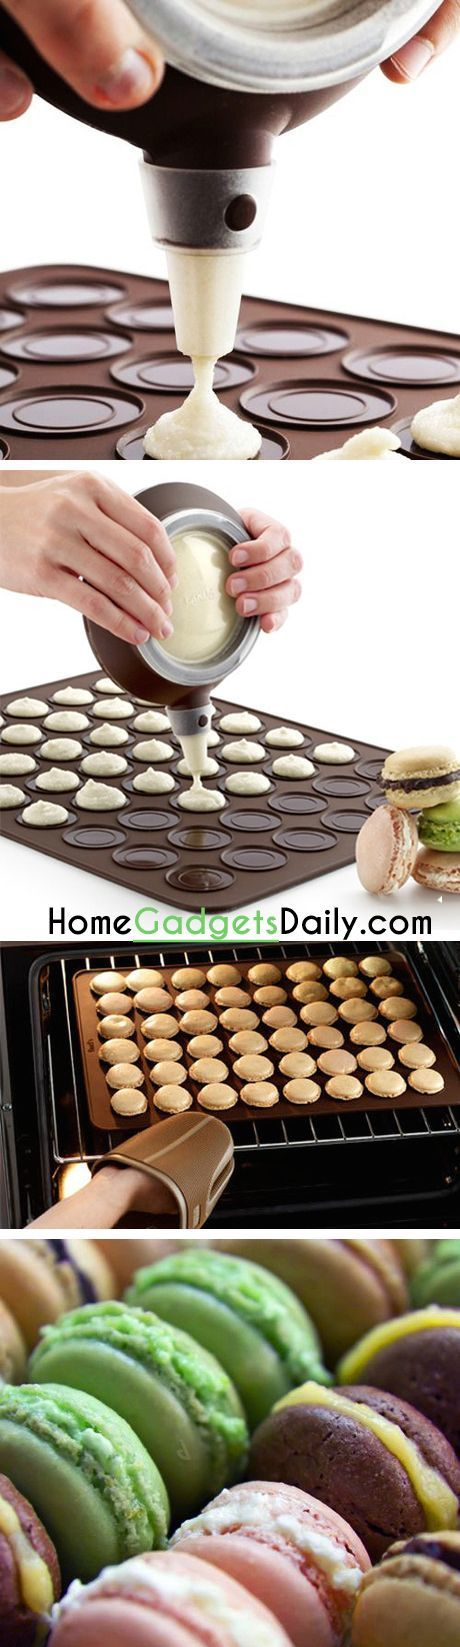 New Cake Decorating Gadgets : 17 Best ideas about Baking Gadgets on Pinterest Cake ...